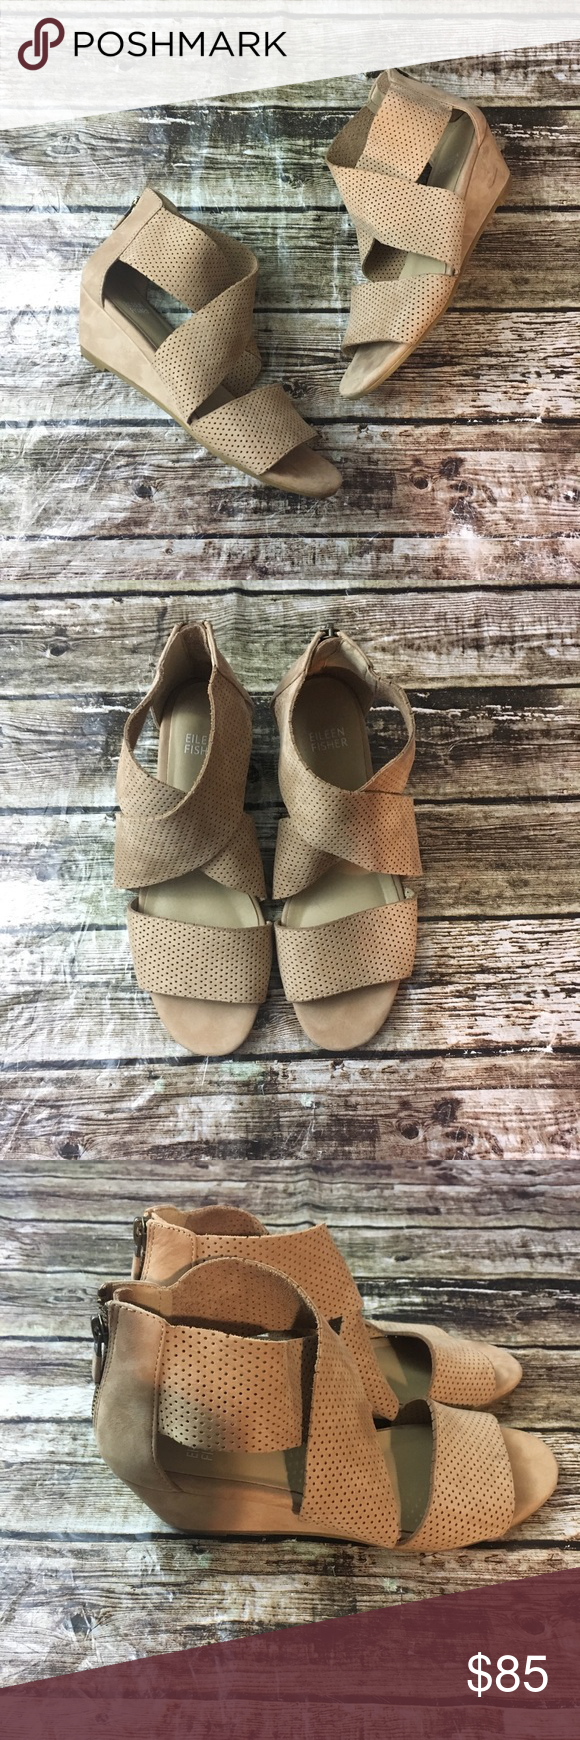 db0911aa4c9c Eileen Fisher Kes 2 Perforated Suede Wedge Sandal Eileen Fisher Kes 2  Perforated Suede Wedge Sandal, in great pre owned condition!